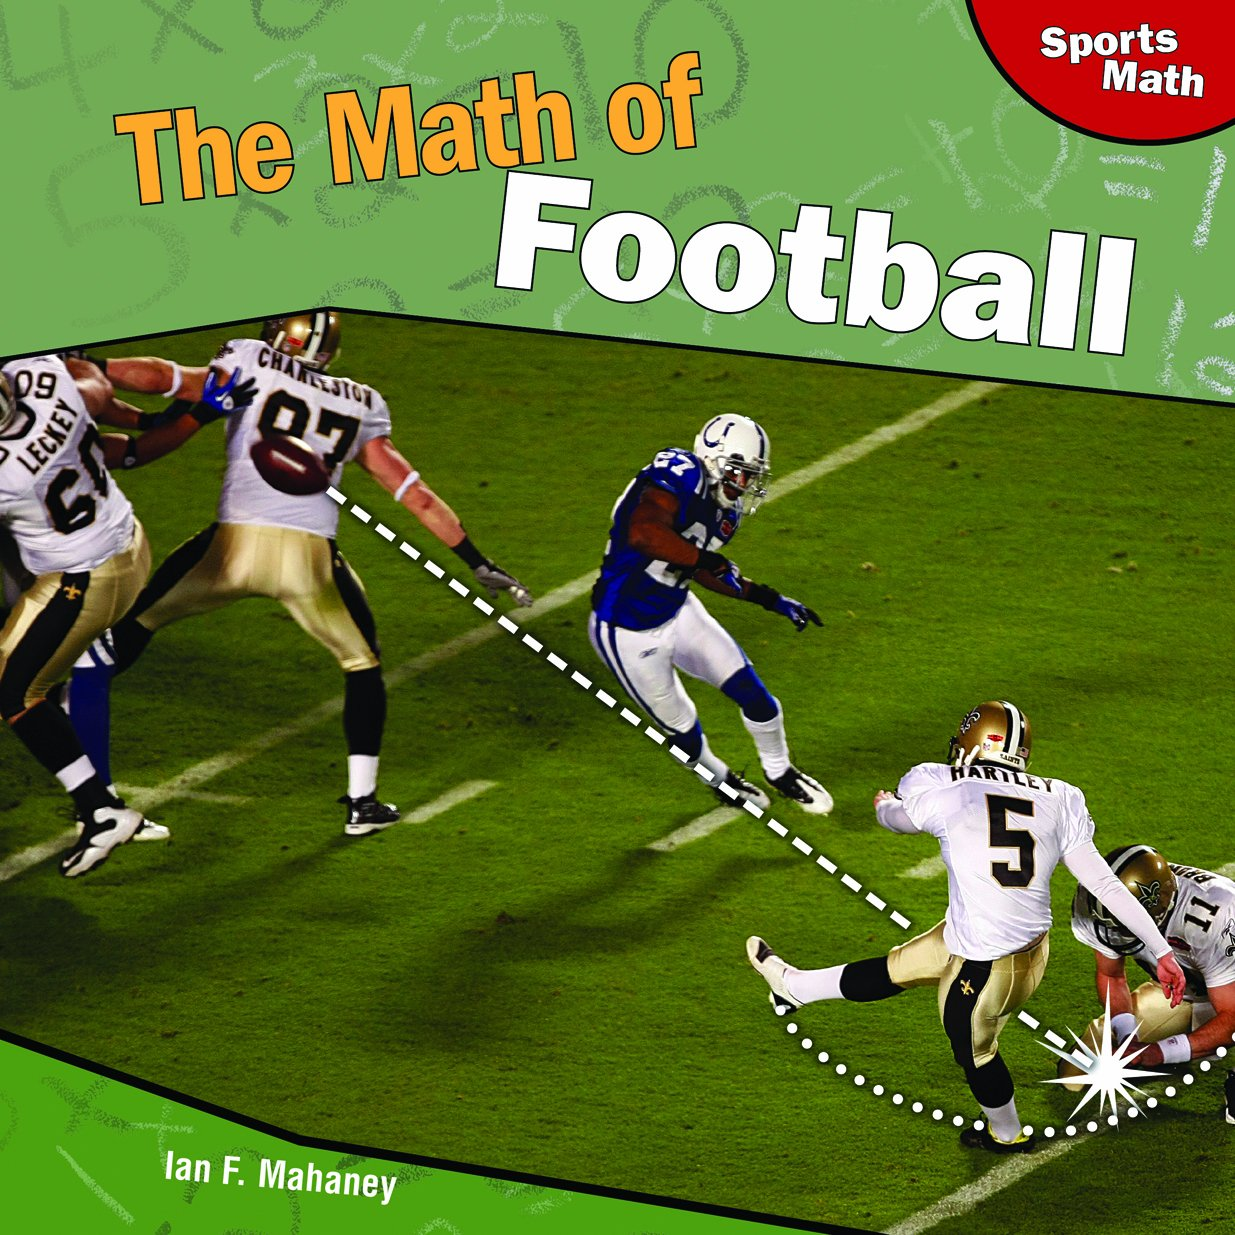 Read Online The Math of Football (Sports Math) PDF ePub book